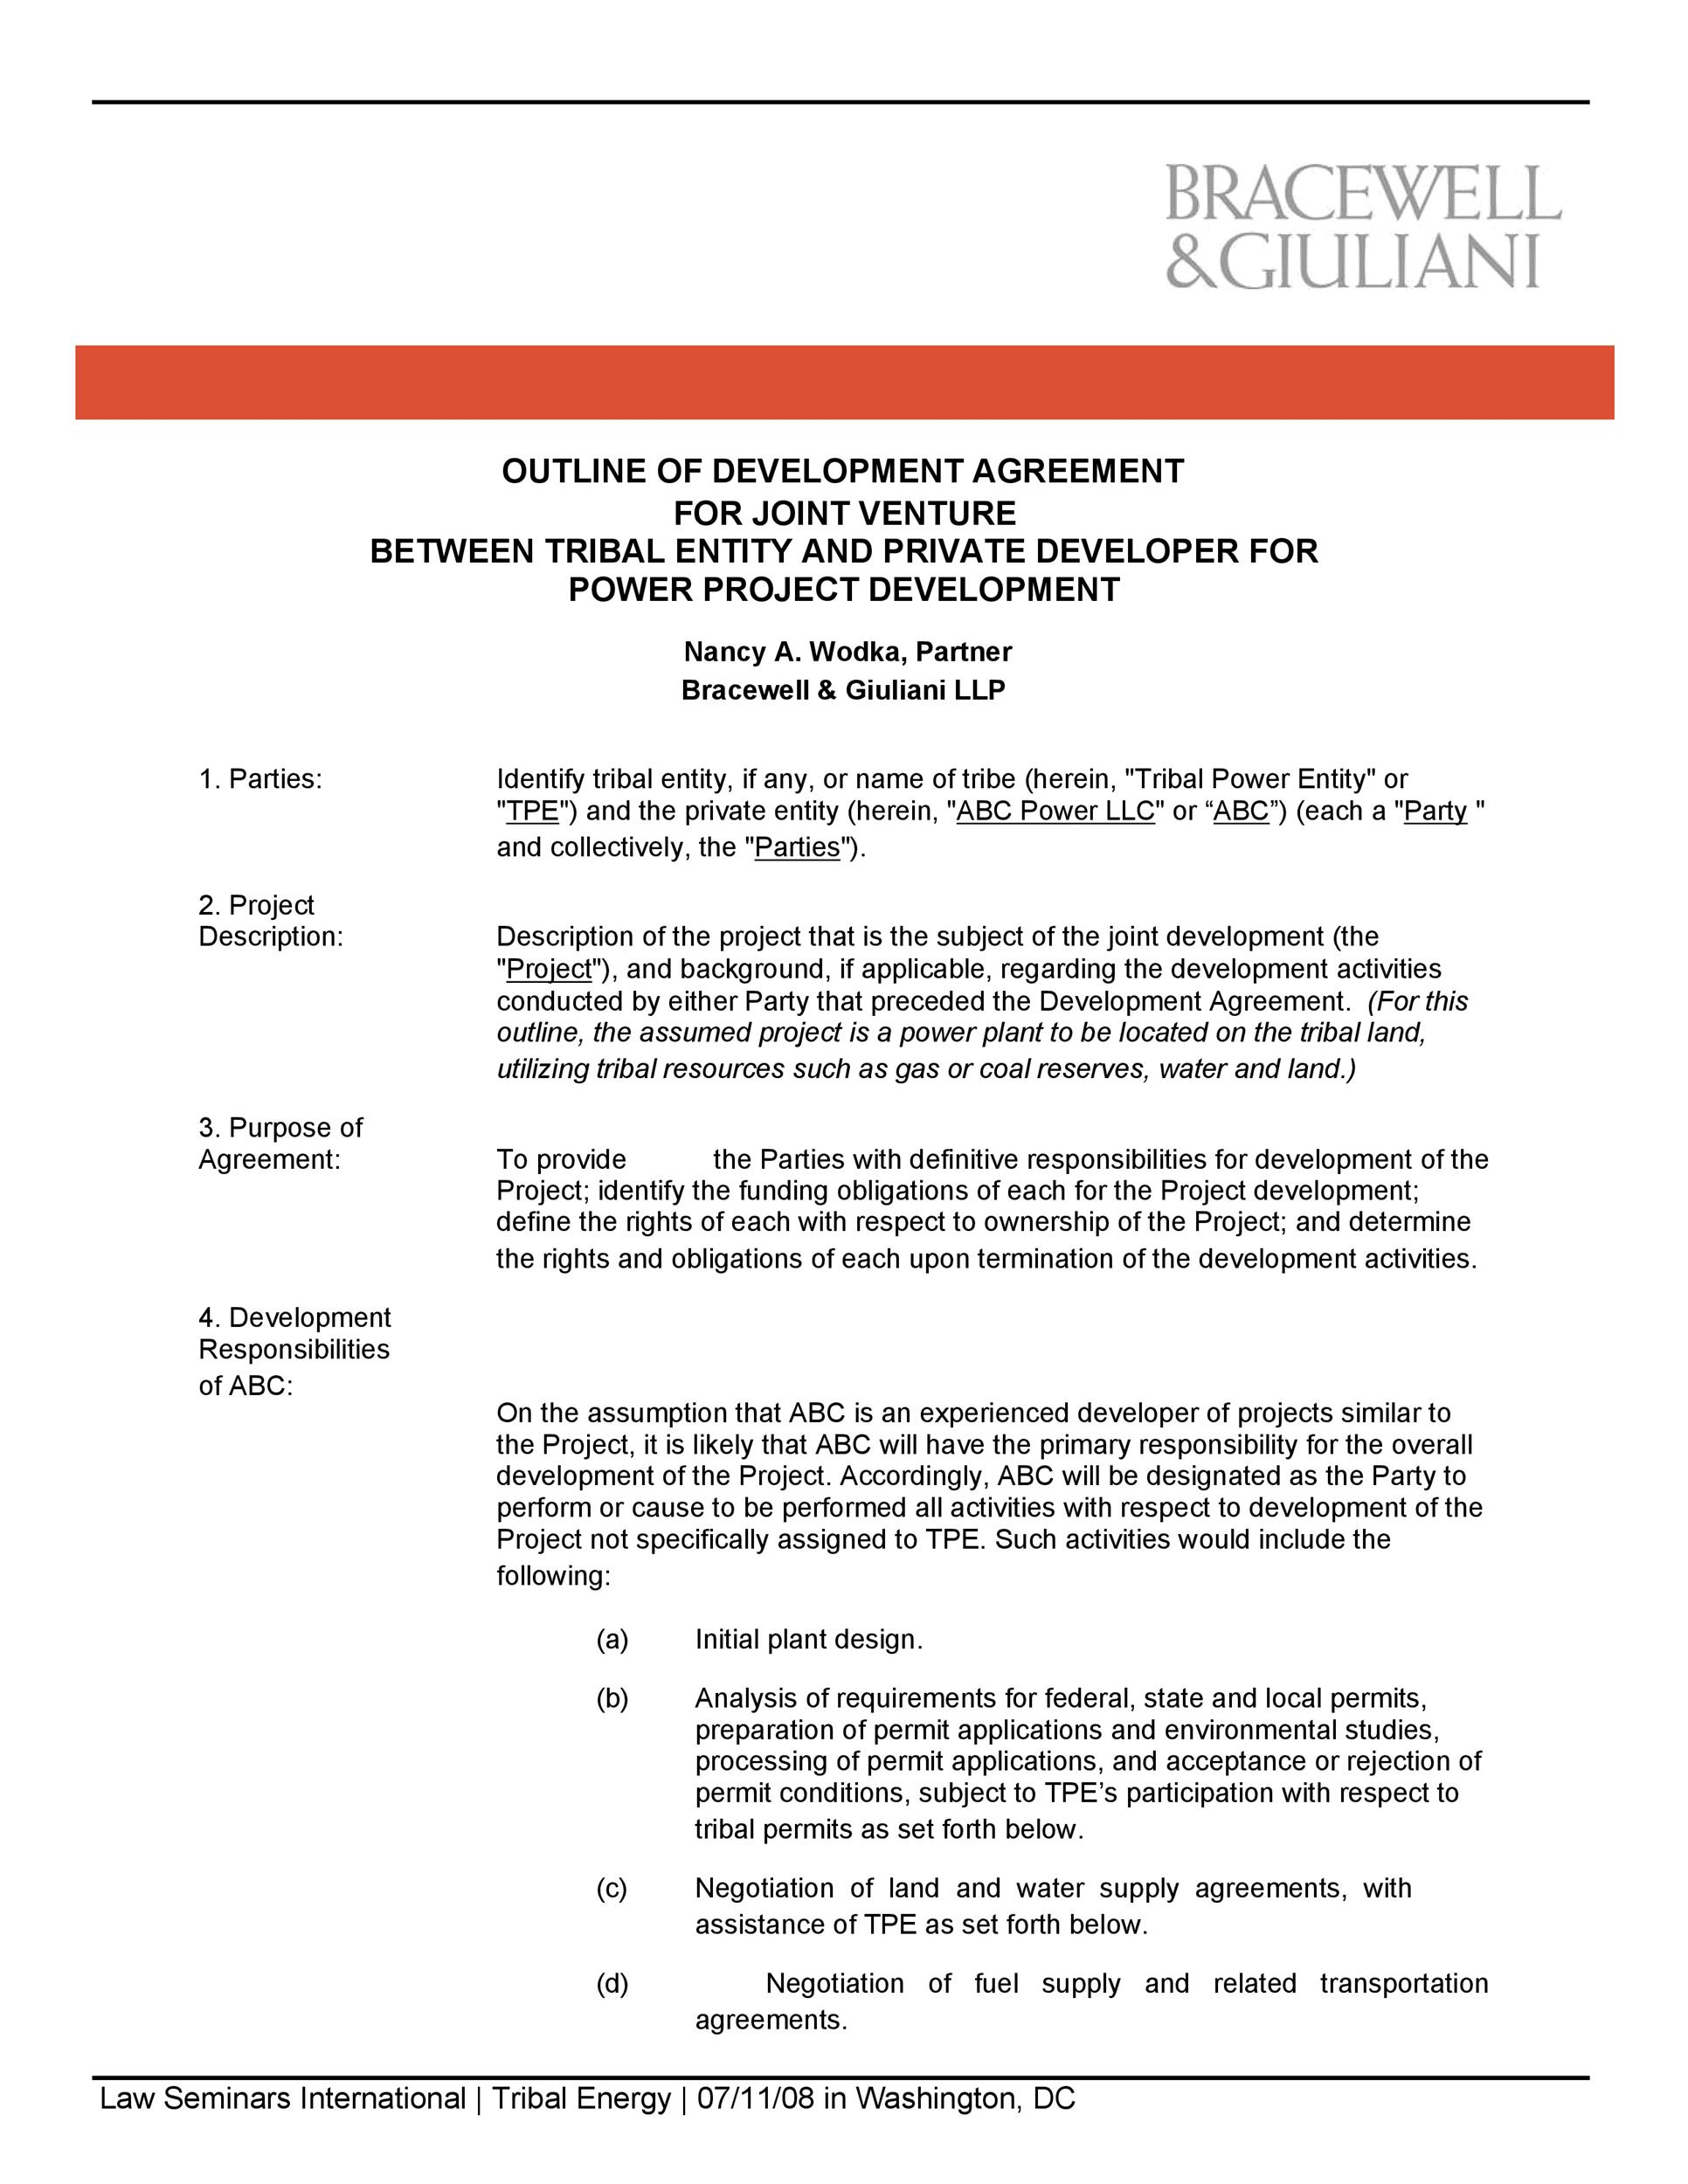 53 Simple Joint Venture Agreement Templates PDF, DOC ᐅ Template Lab